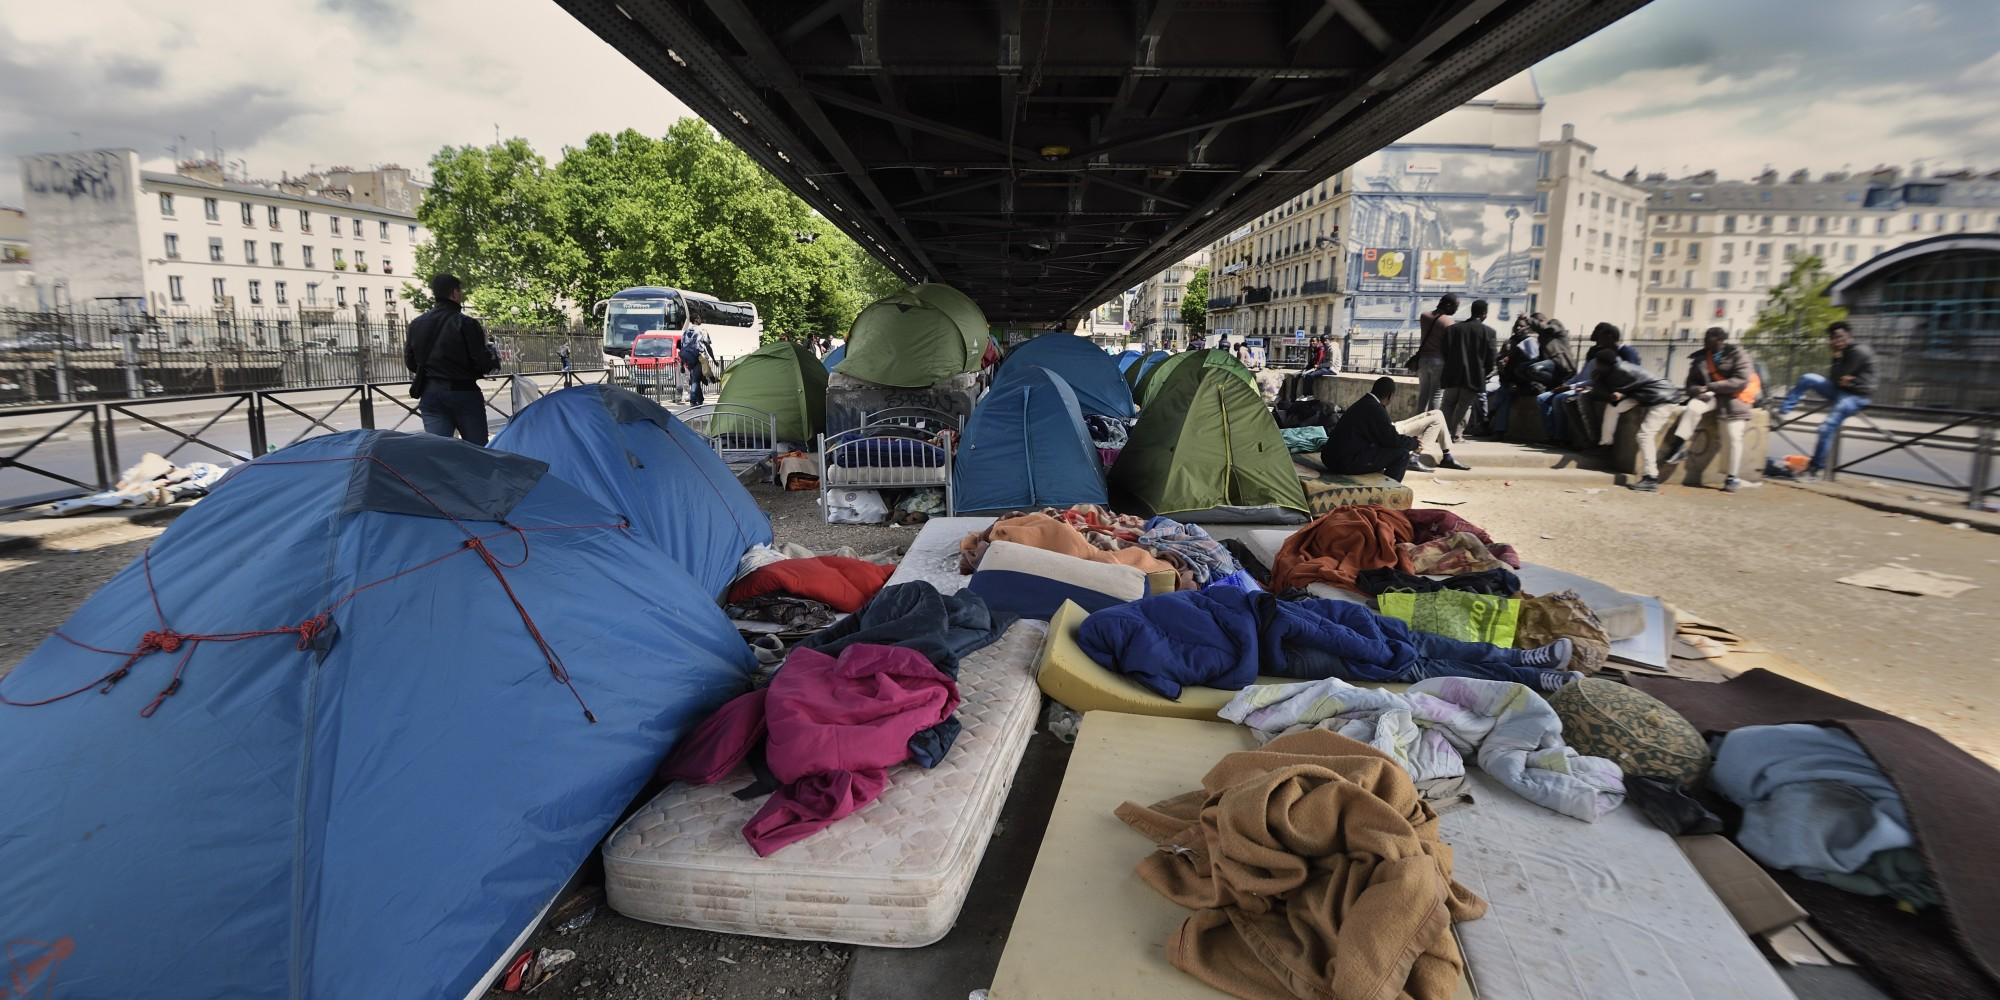 Le camp humanitaire pour migrants paris sera install pr s de la porte de la chapelle - Bureau d immigration du quebec a paris ...